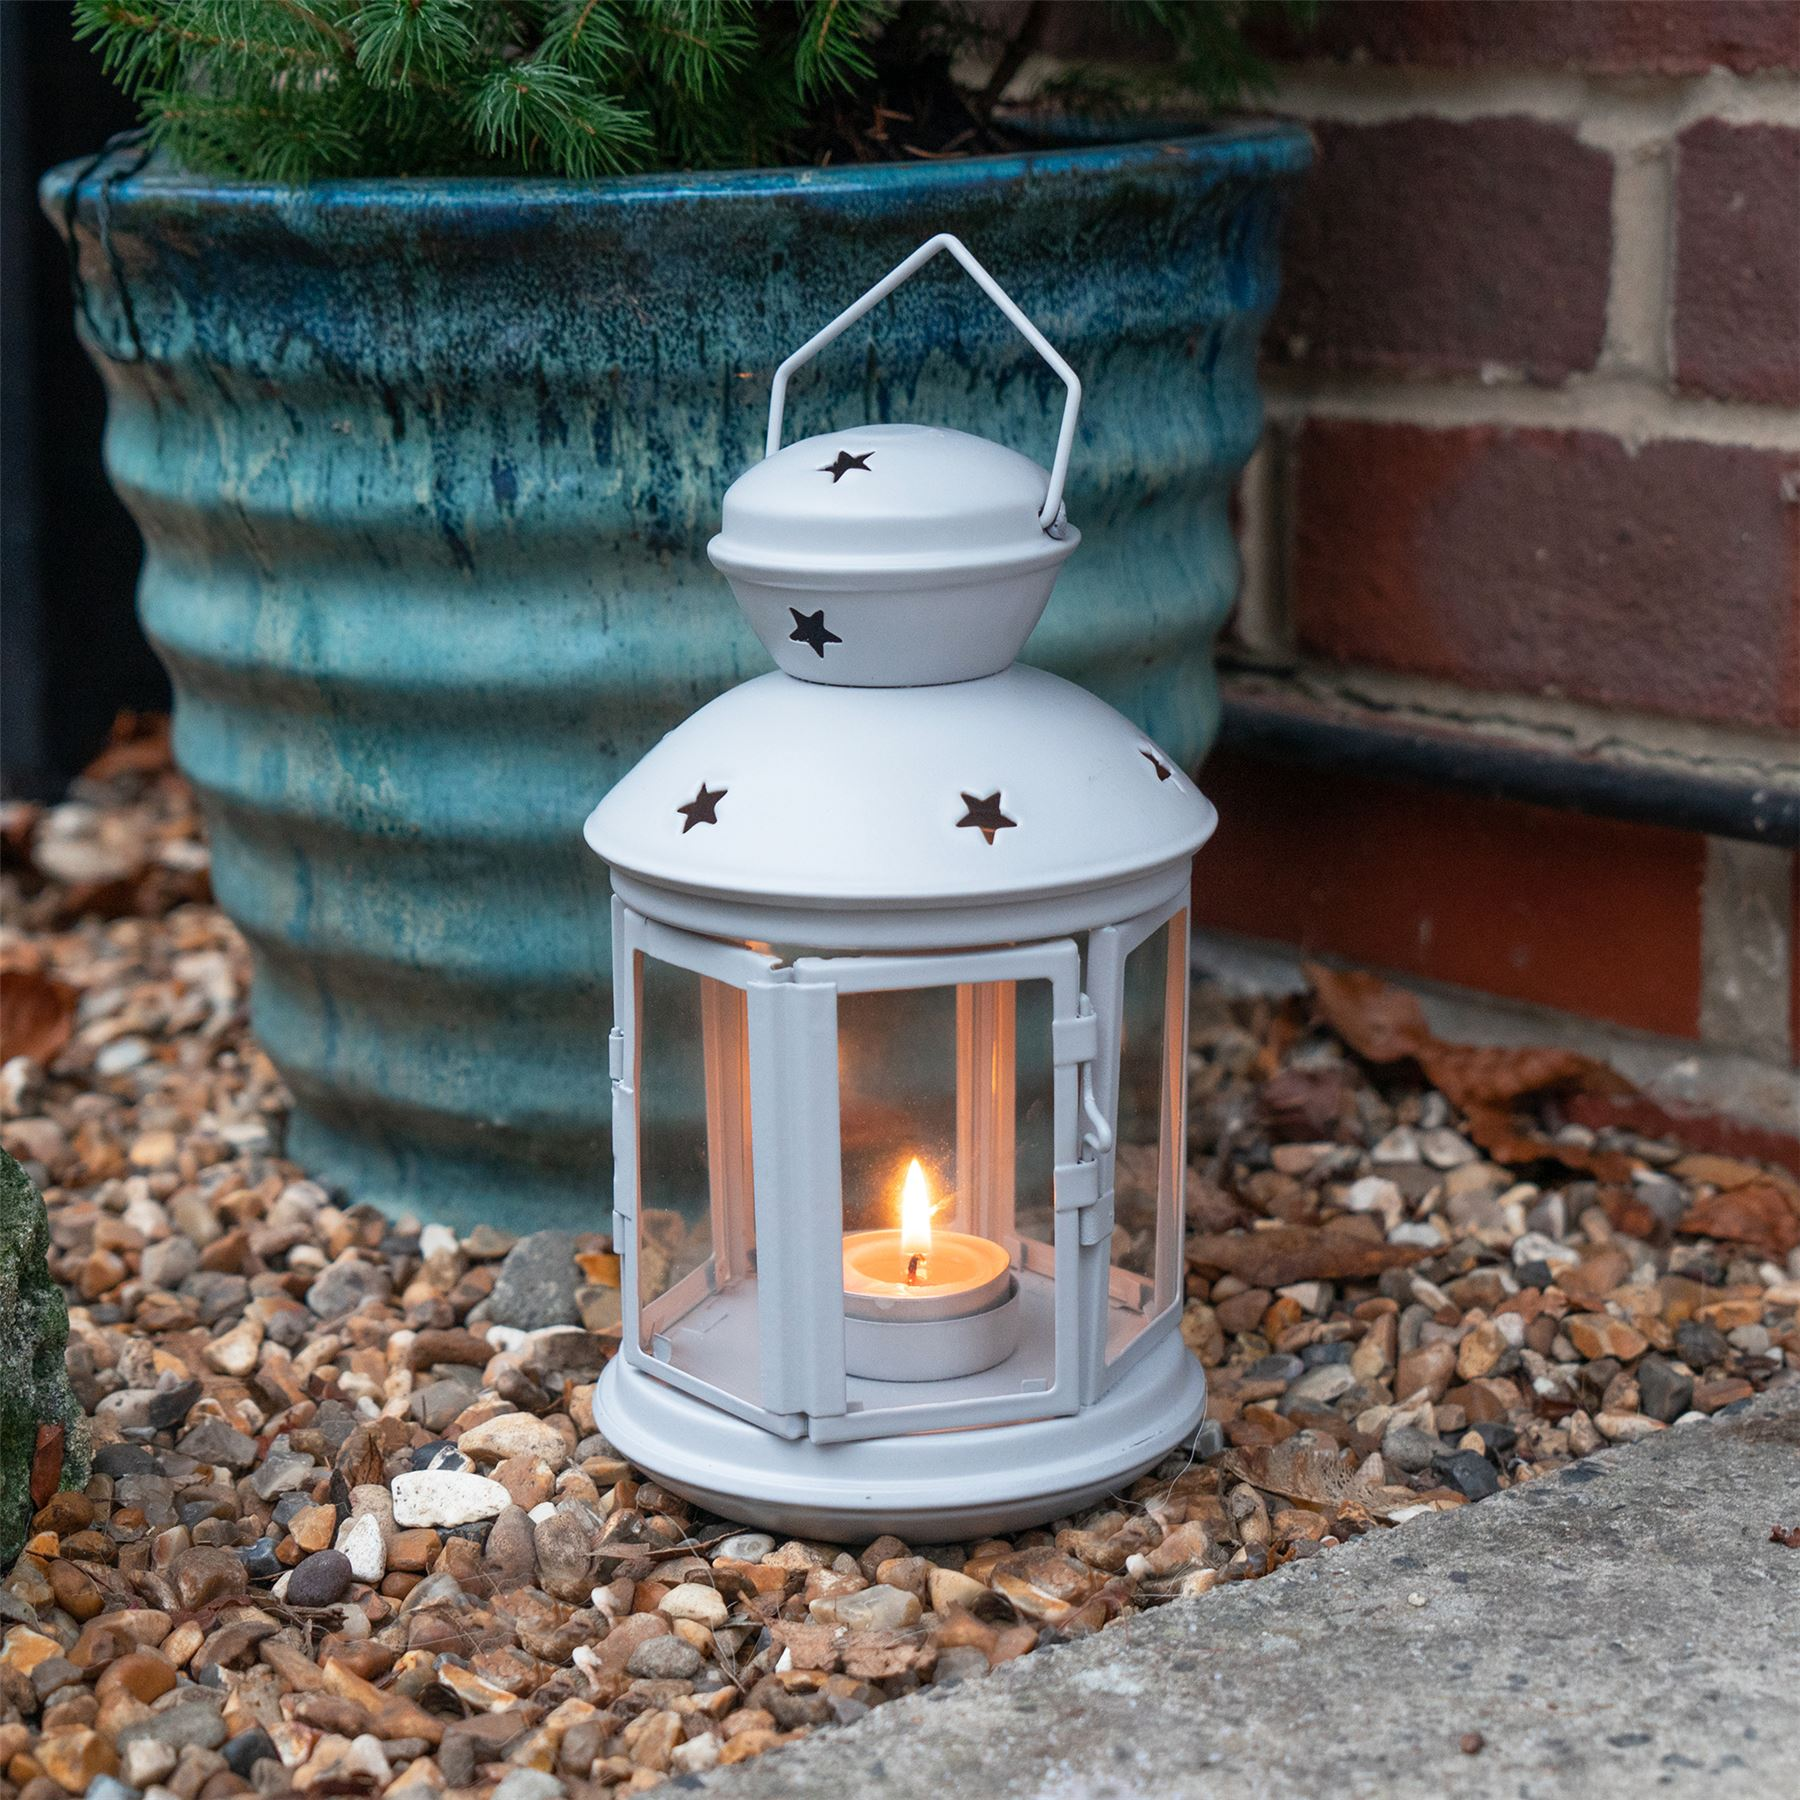 Metal-Candle-Lanterns-Tealight-Holders-Vintage-French-Moroccan-Style-20cm-x2 thumbnail 20